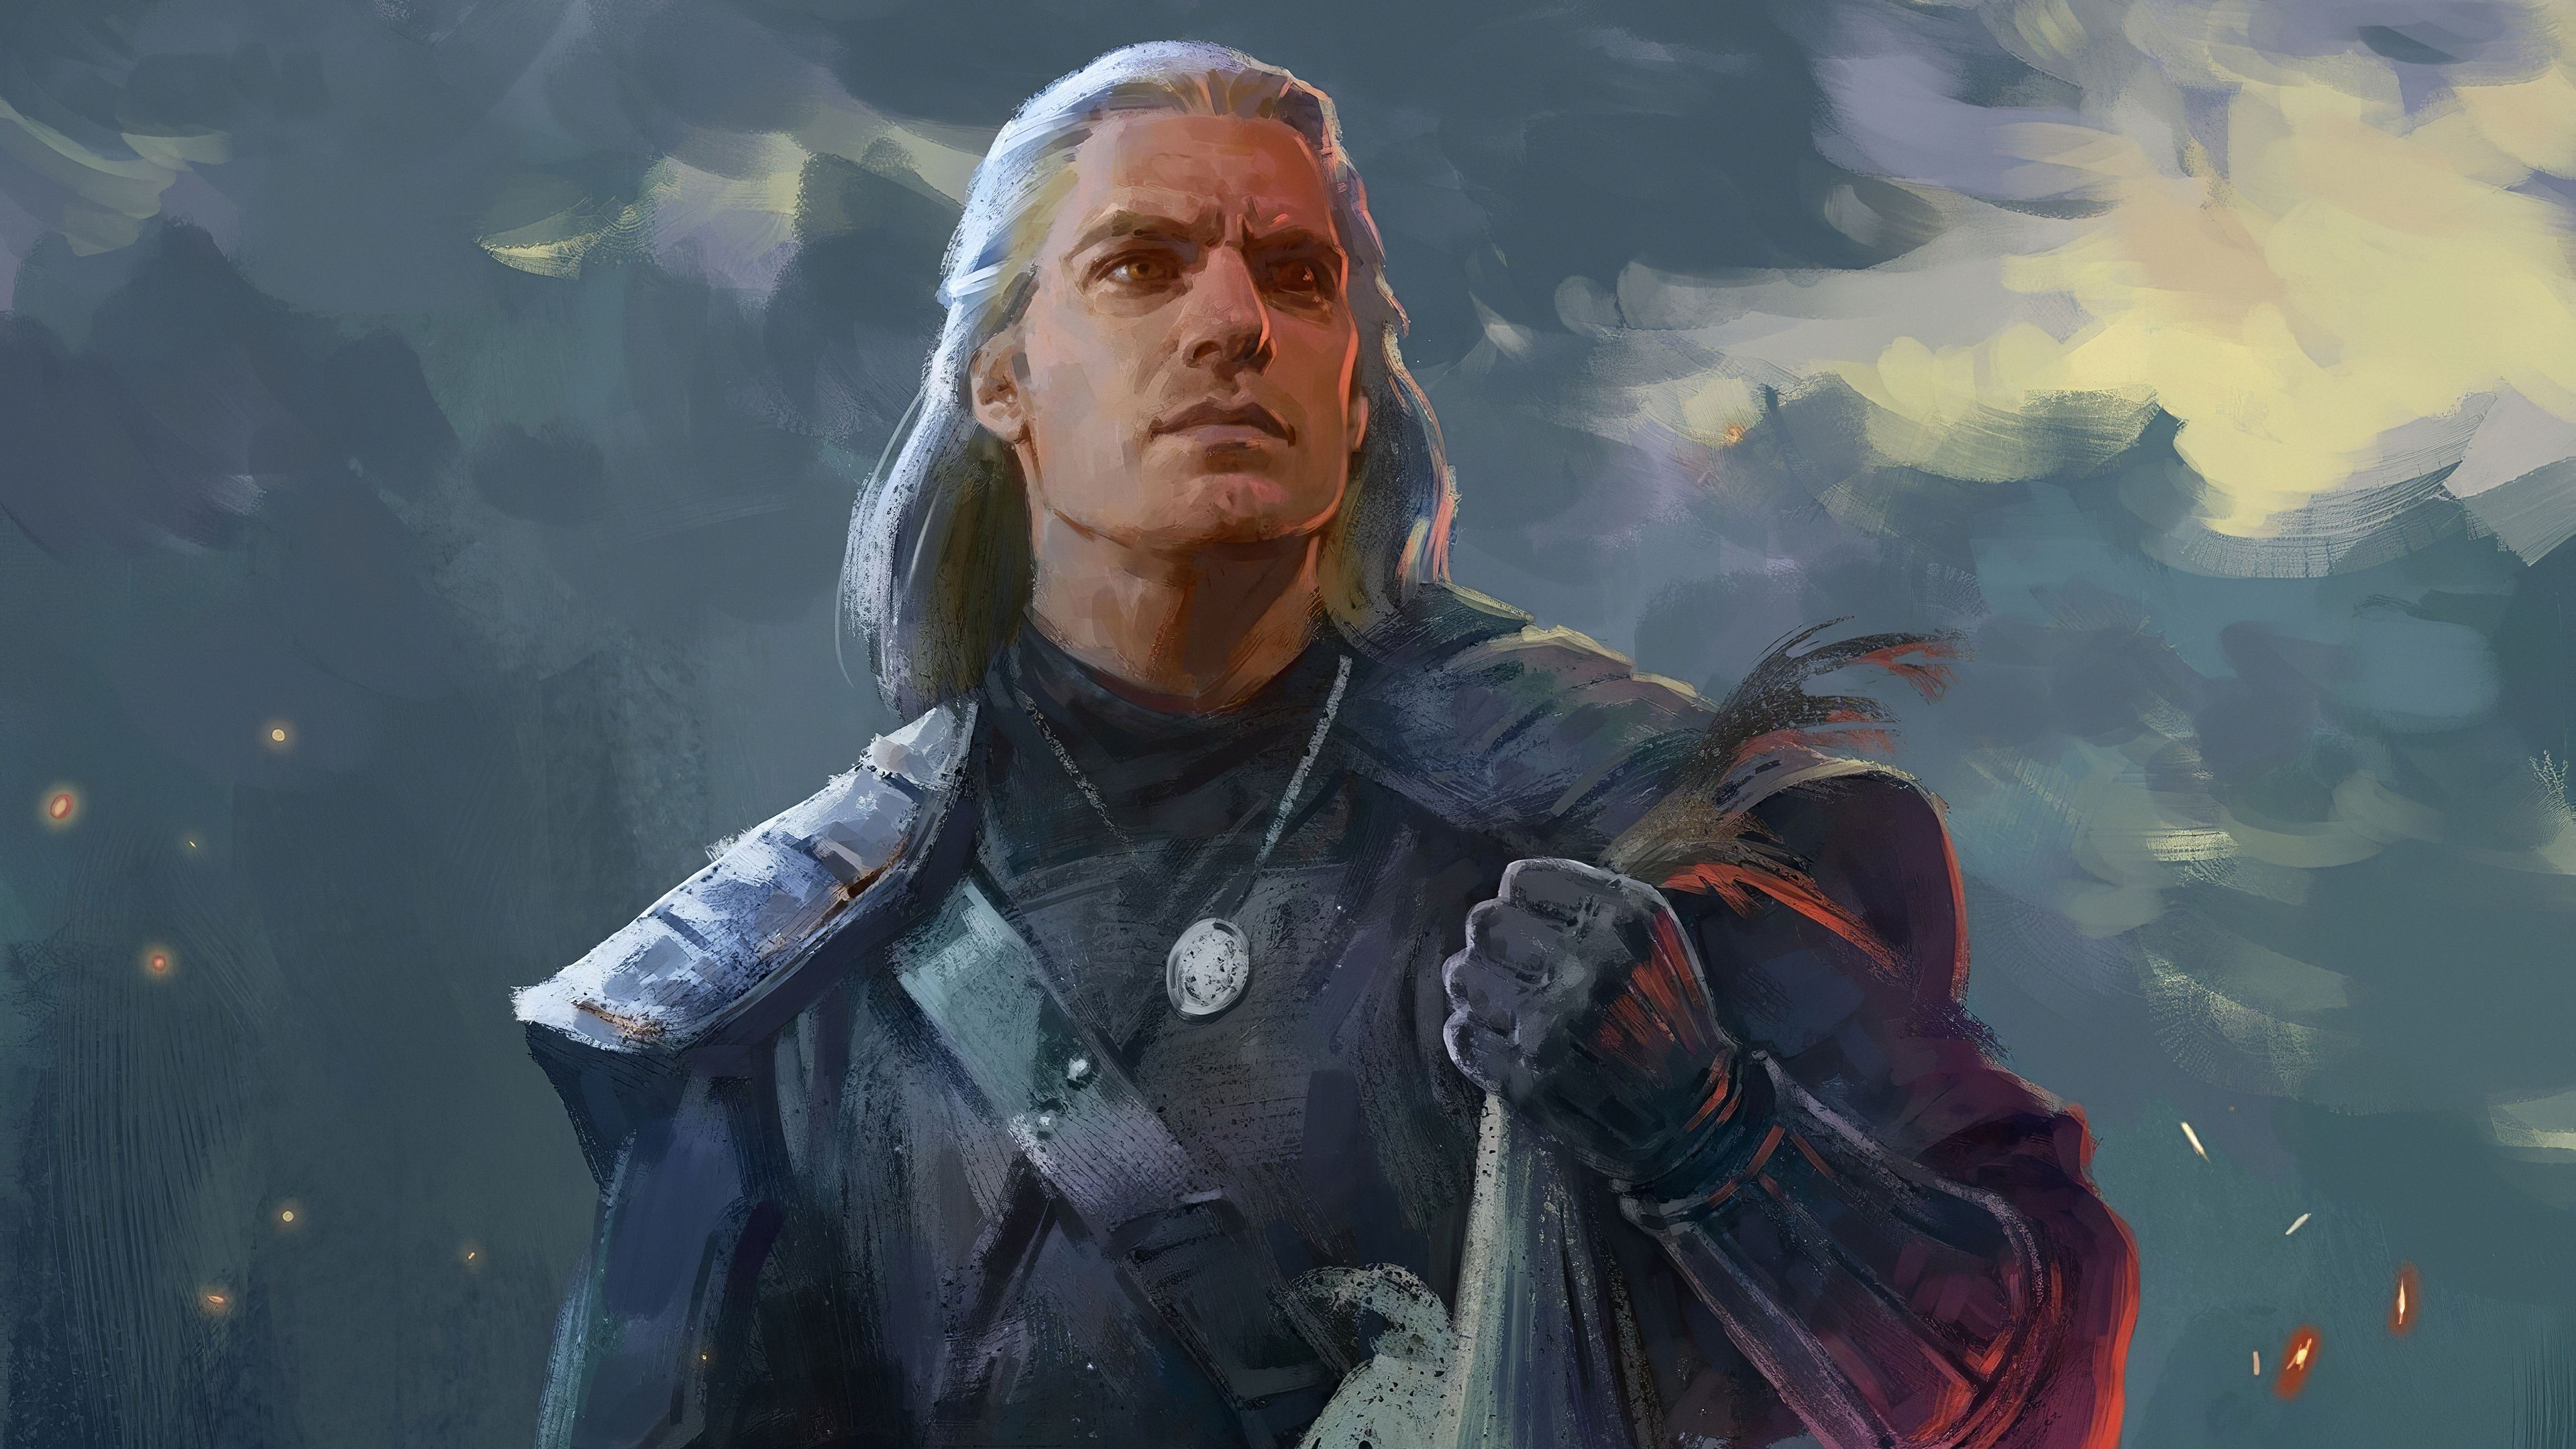 Pin By Renata Hartman On A Witcher In 2020 The Witcher Witcher Art Henry Cavill